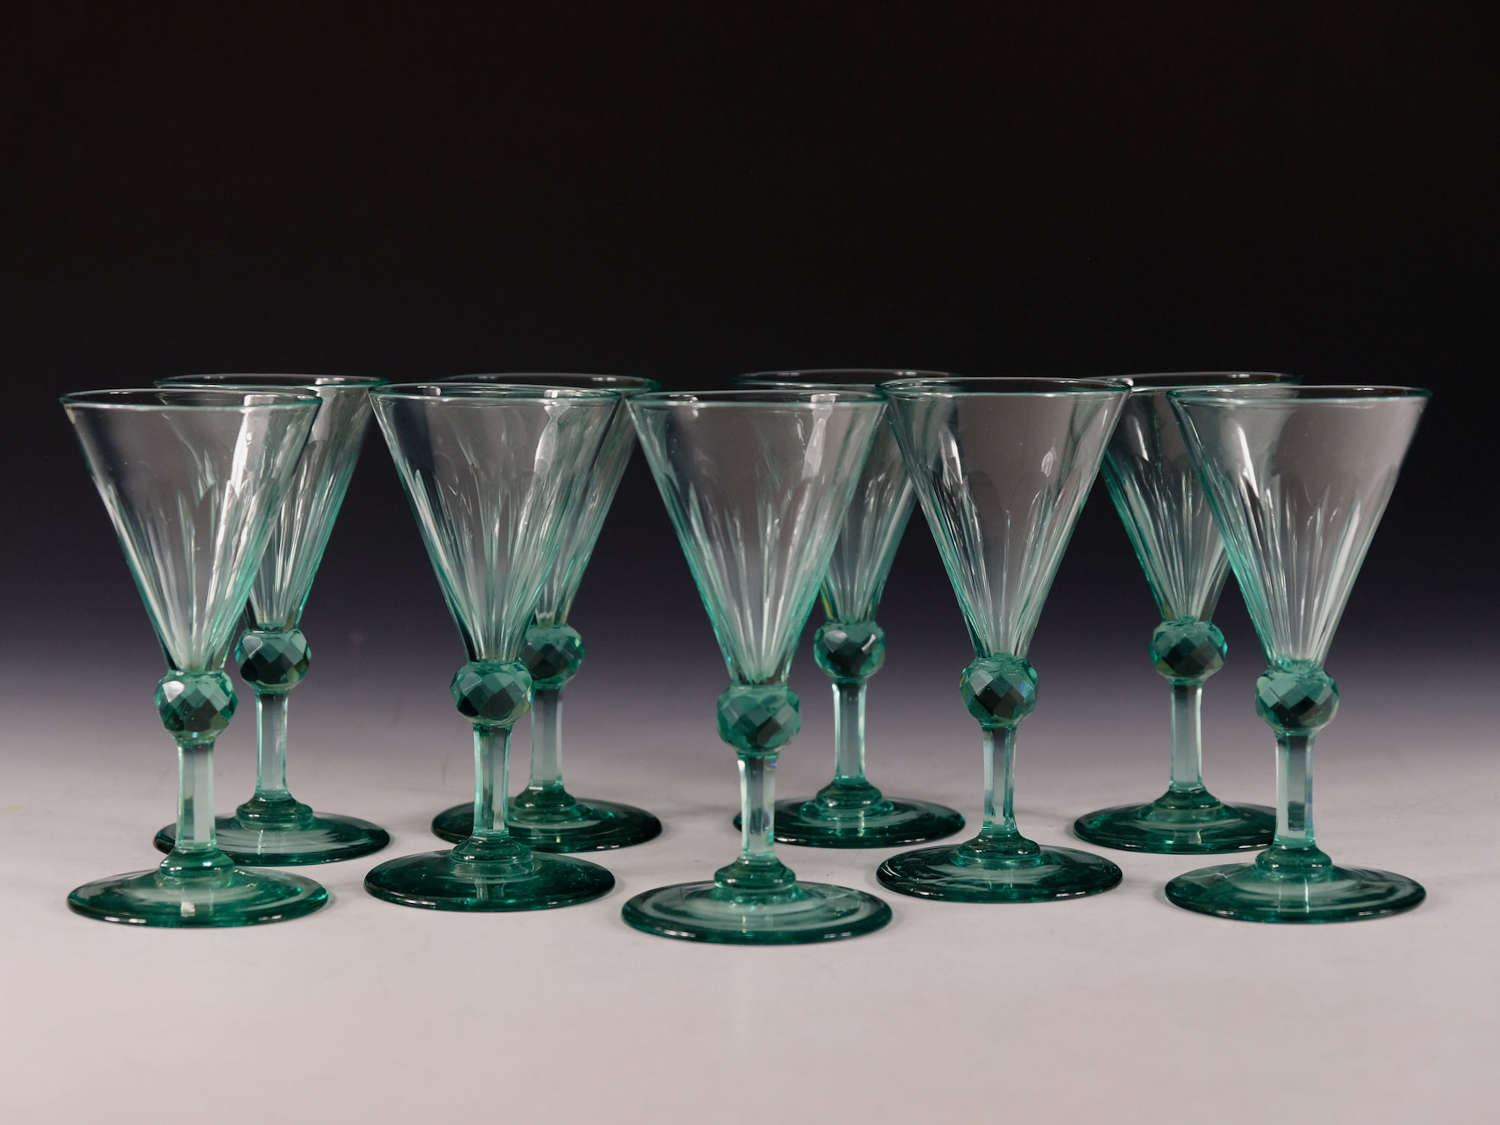 Antique glass pale green wine glass English c1830